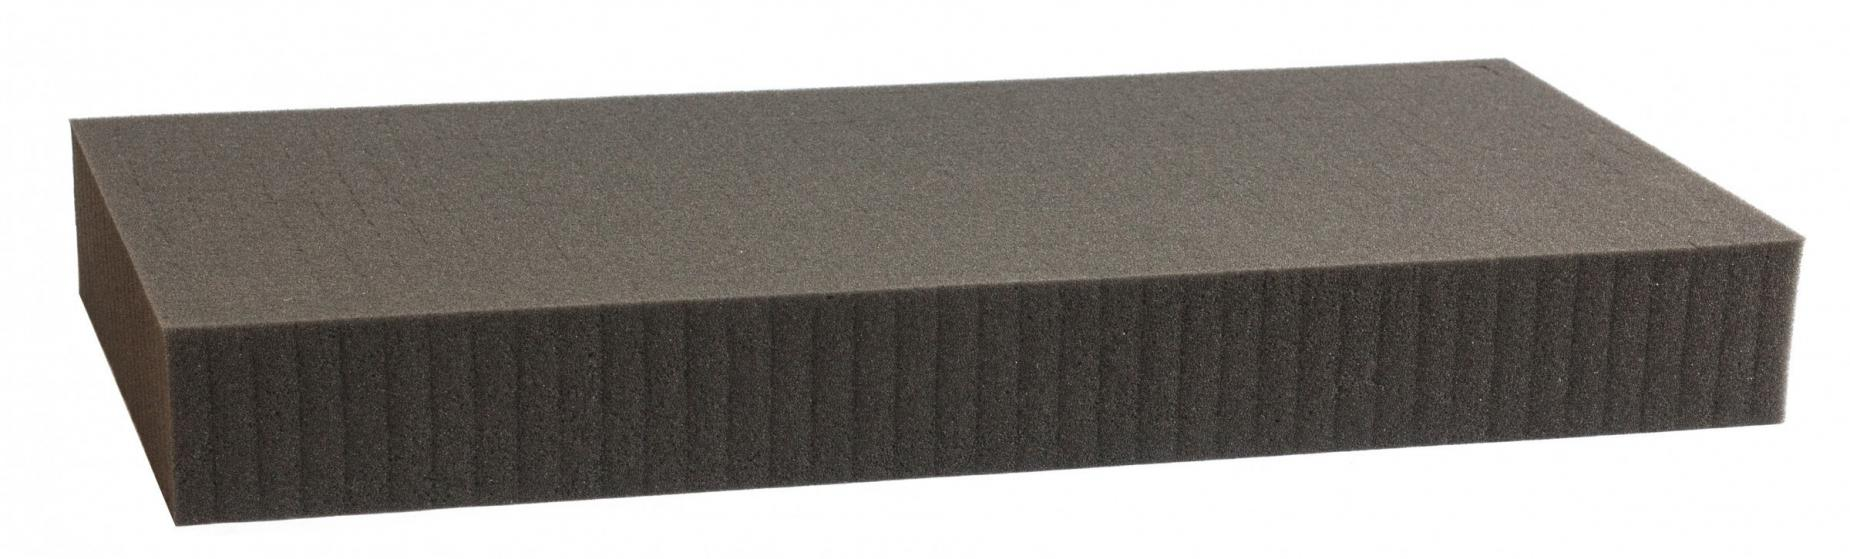 850 mm x 450 mm x 60 mm - Raster 15 mm - Pick and Pluck / Pre-Cubed foam tray